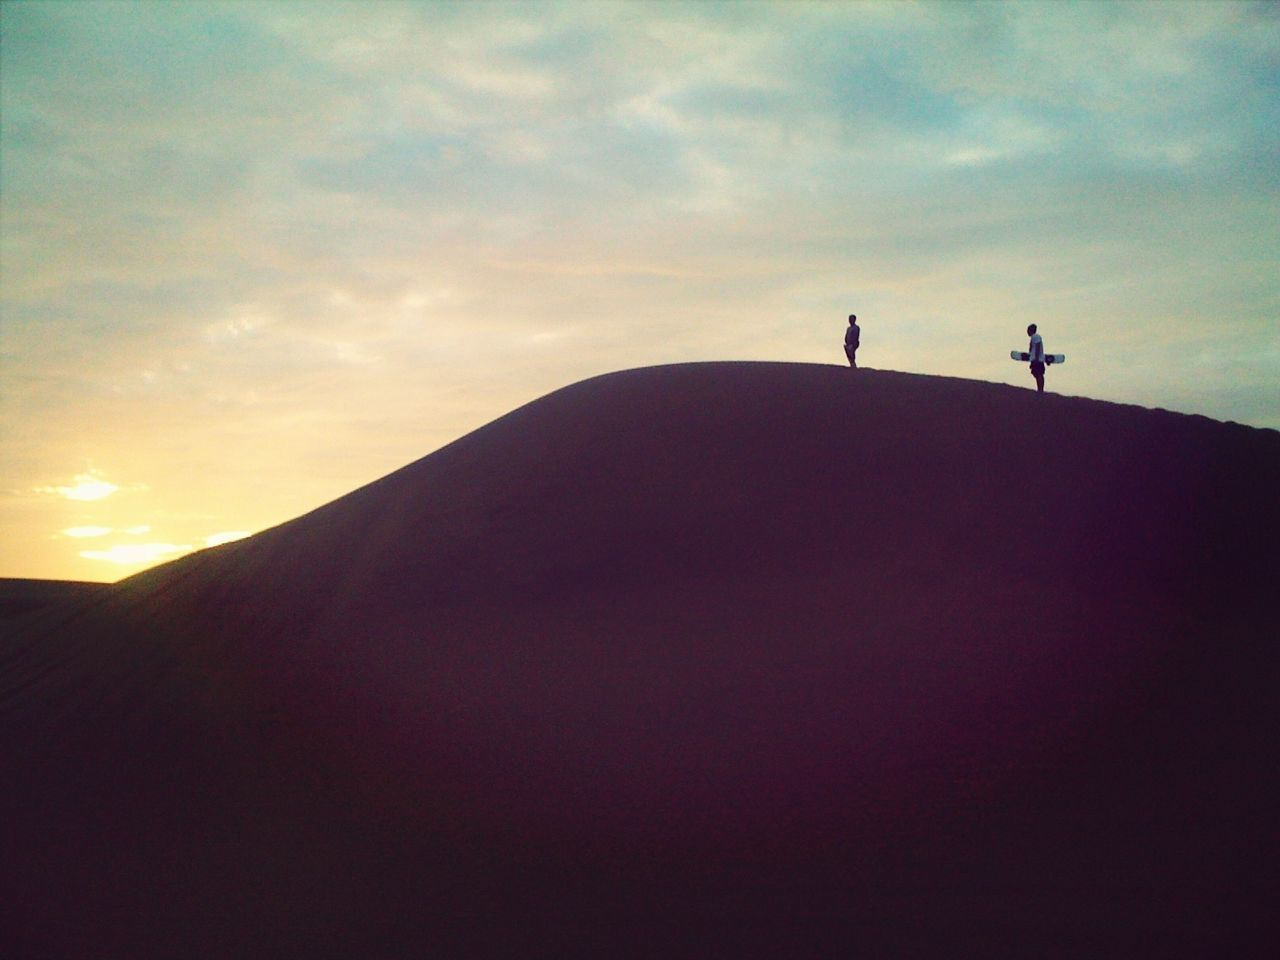 Side view of two silhouette people on landscape against the sky